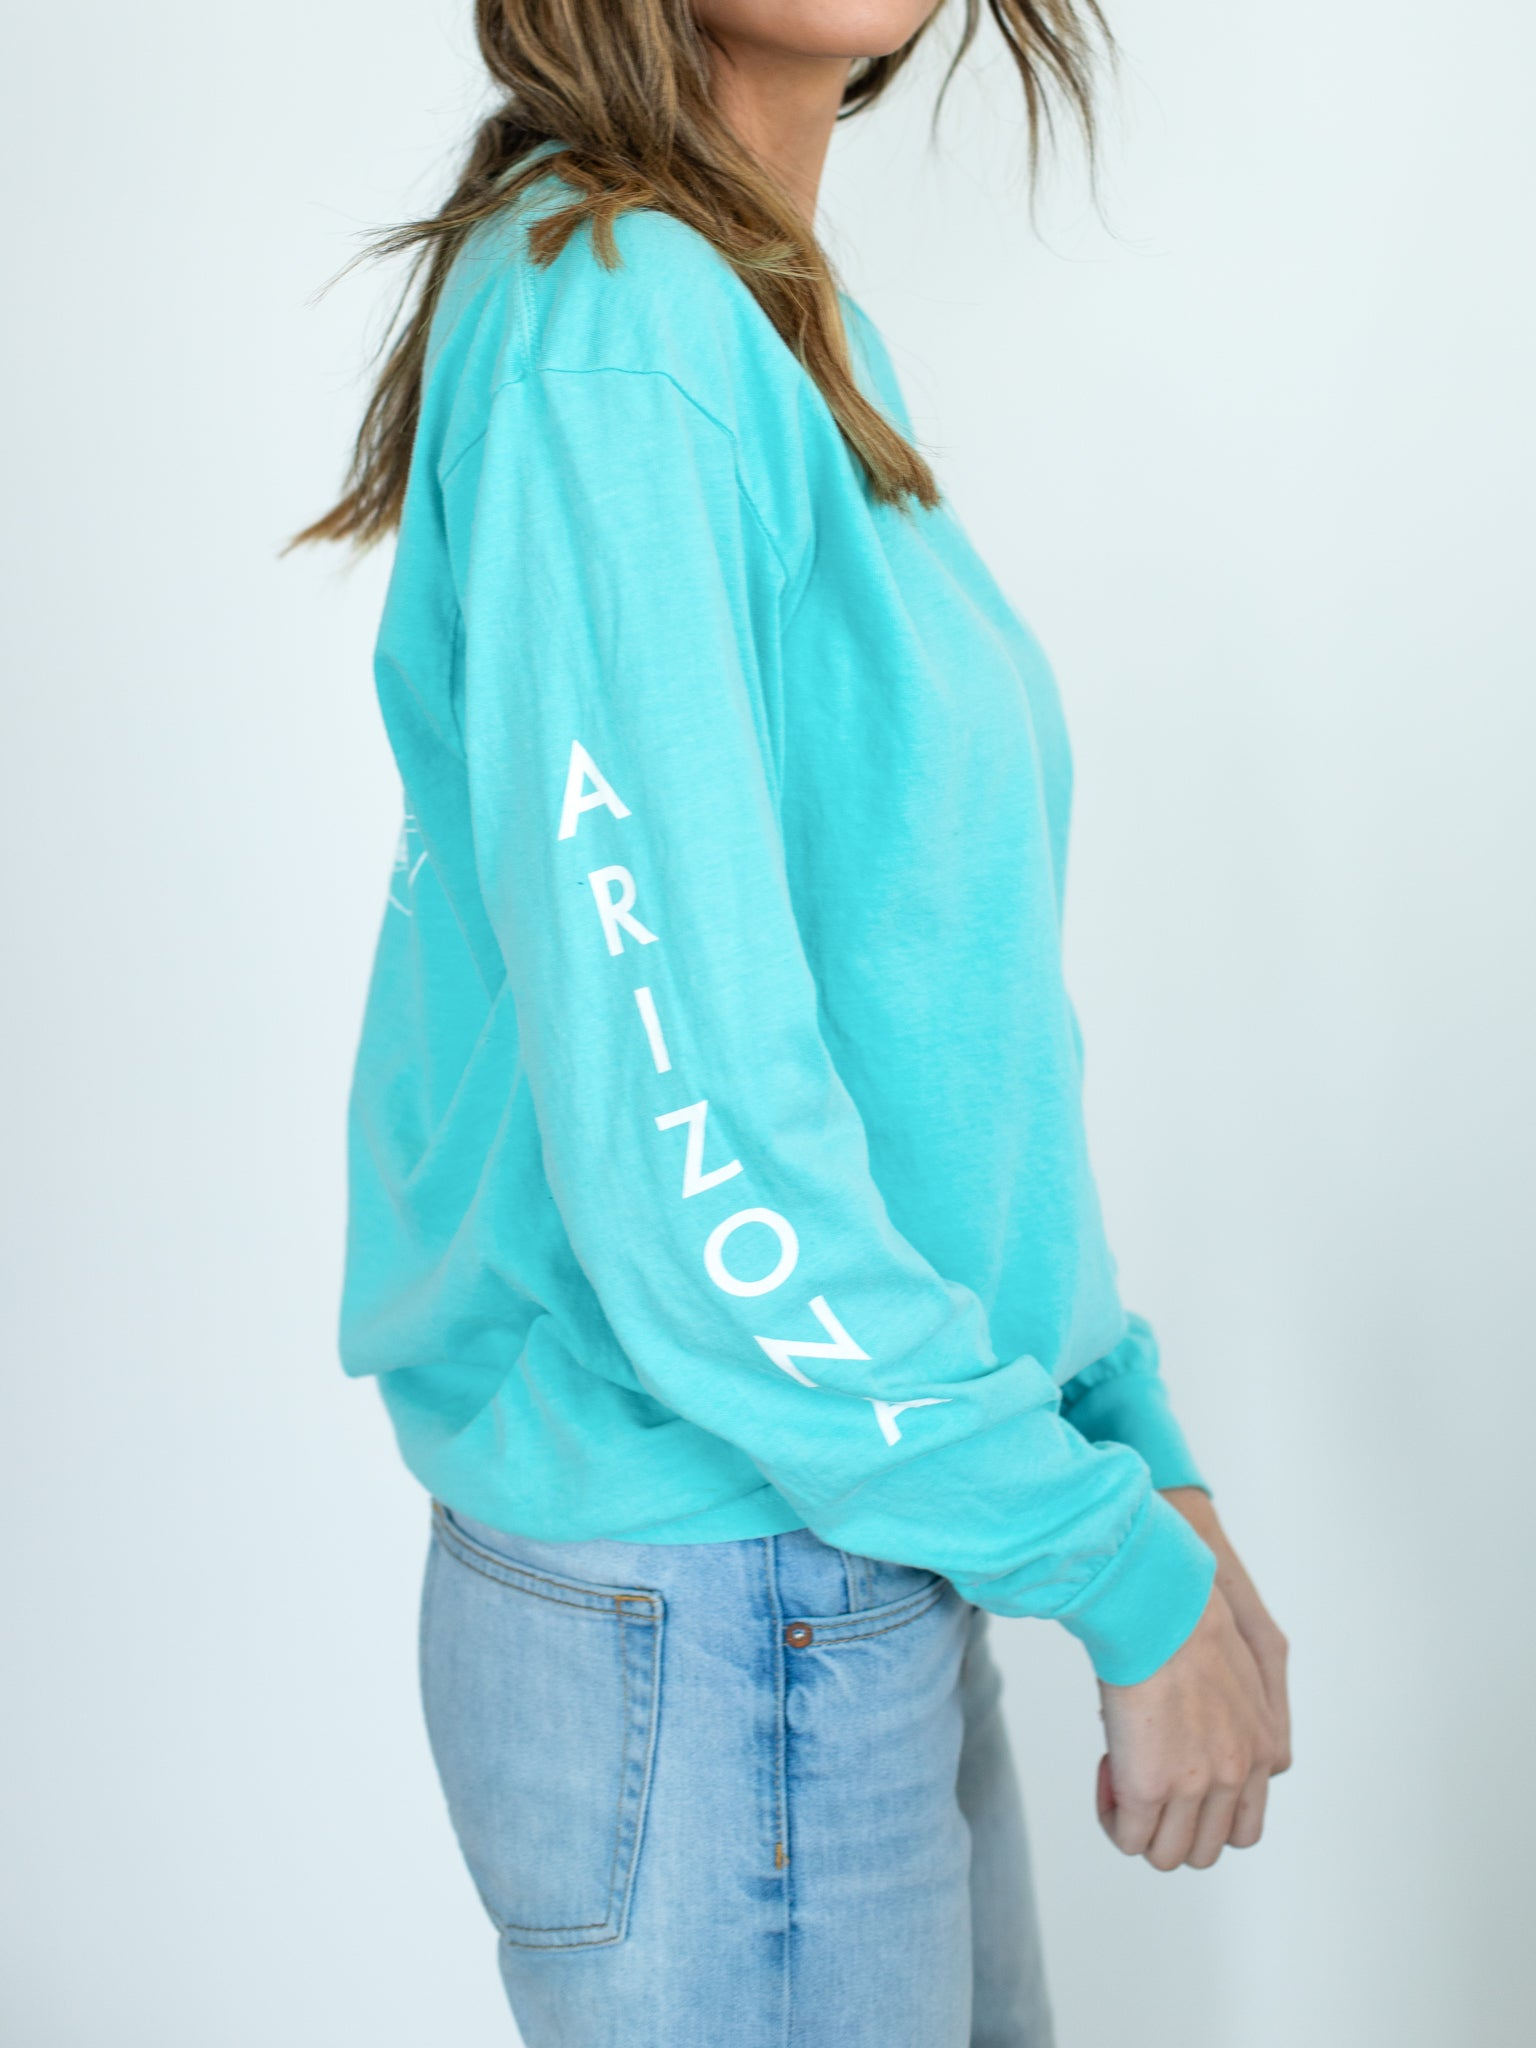 Arizona Long Sleeve T-Shirt - Bright Blue - Shop Back Home